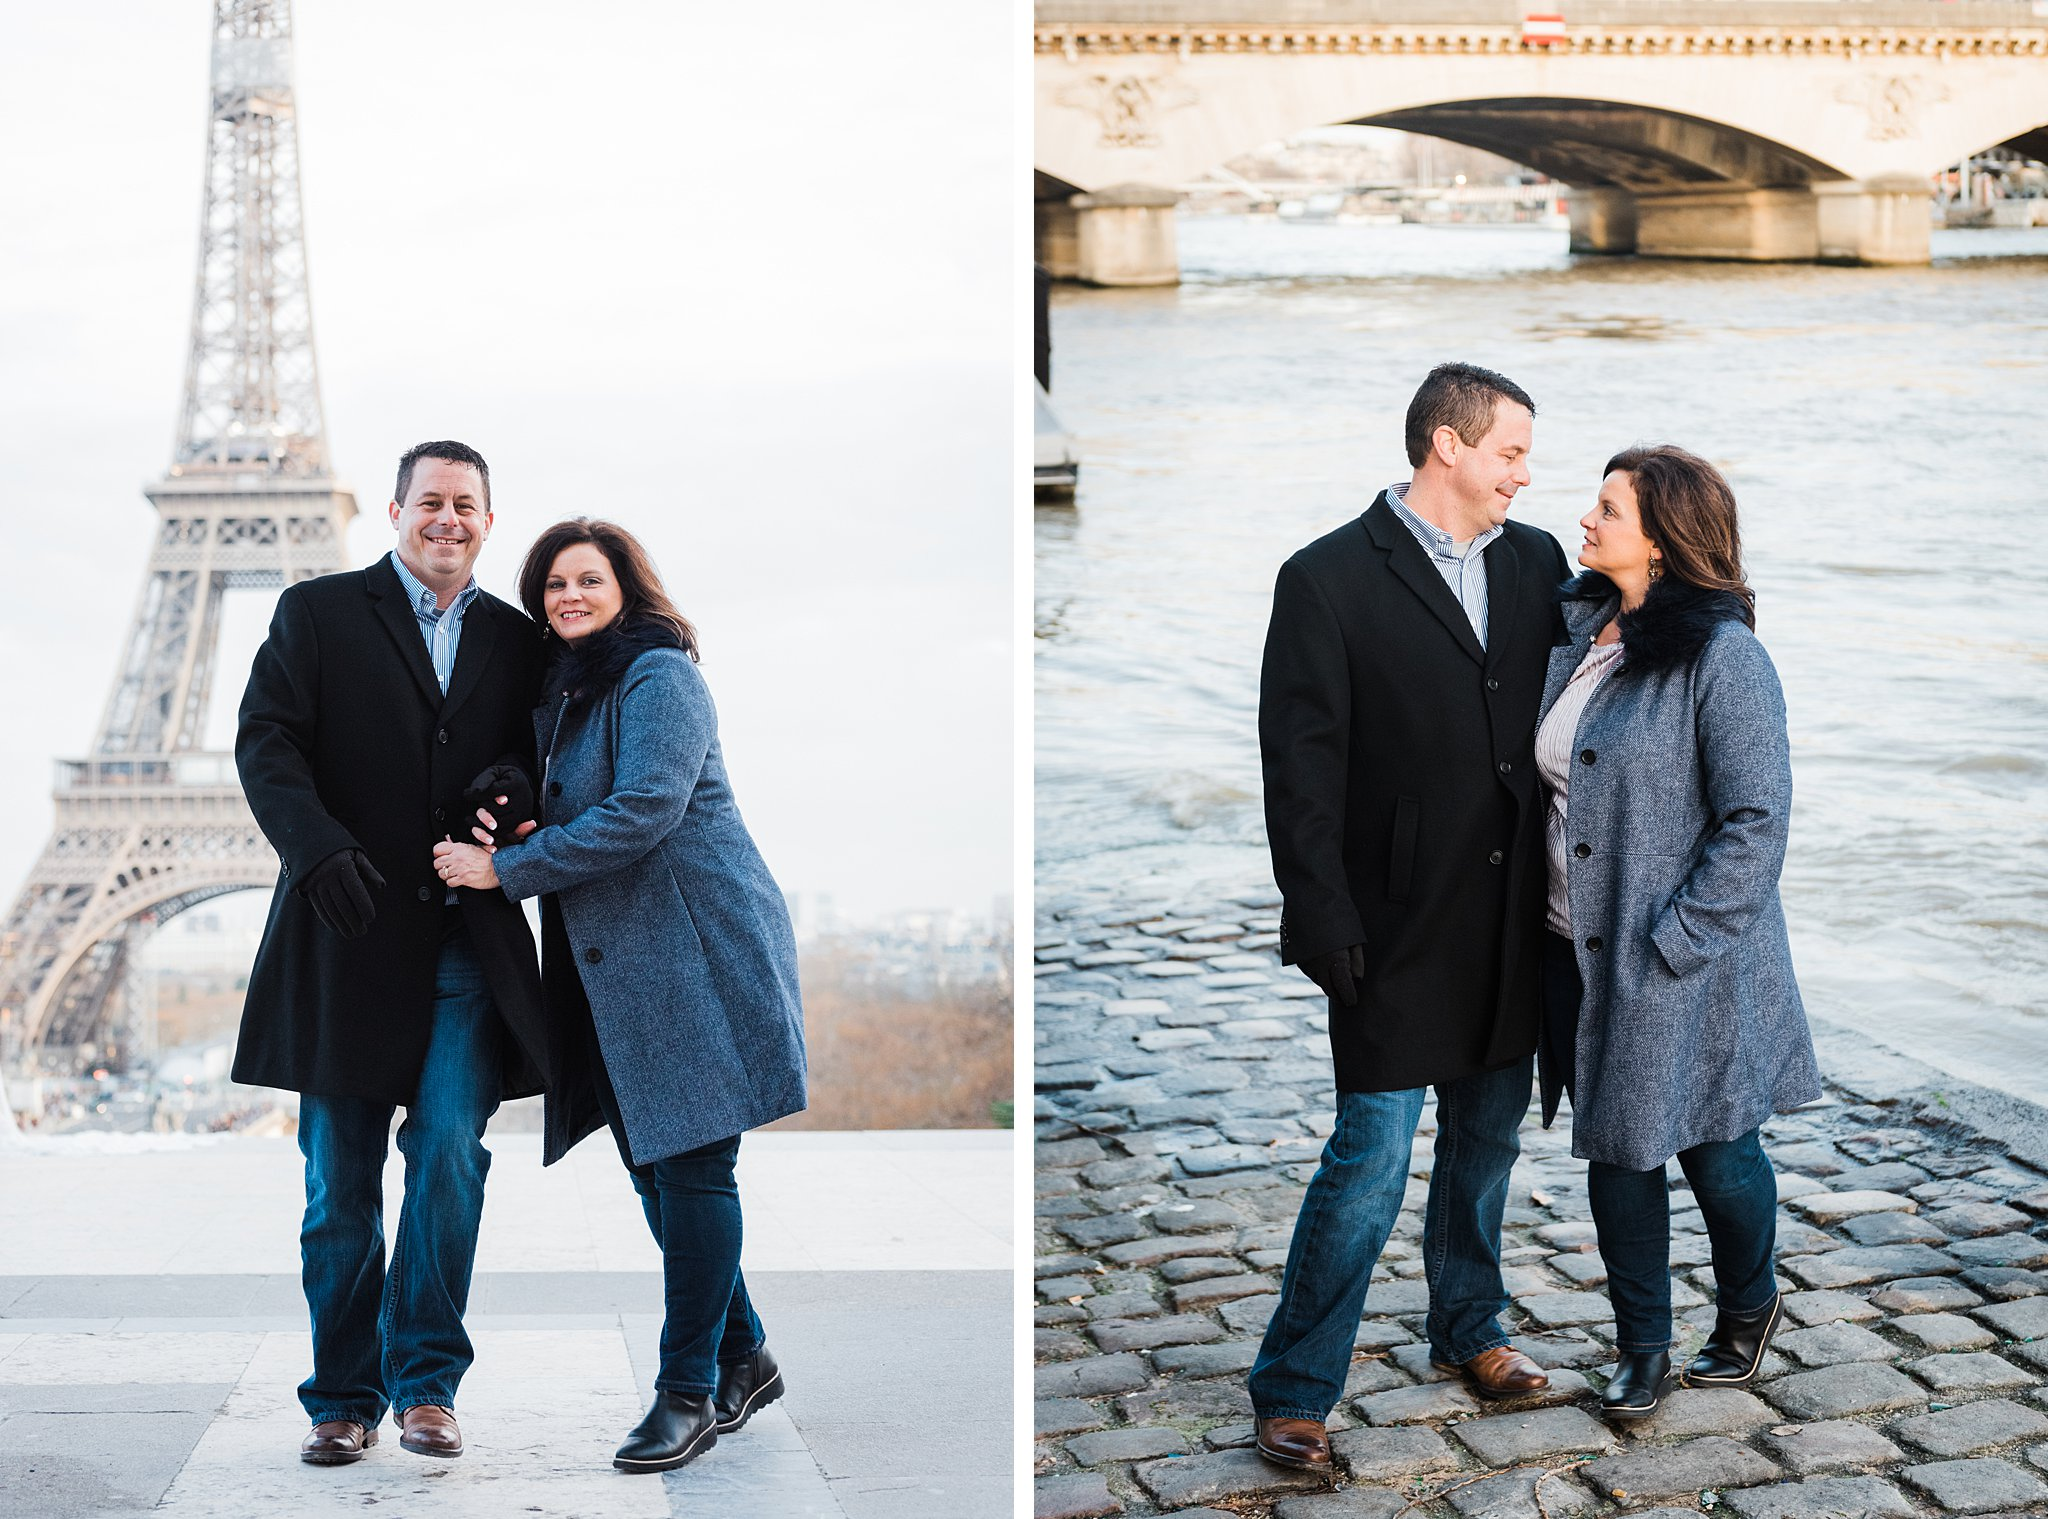 25th anniversary couples photography session by the seine river in Paris, France